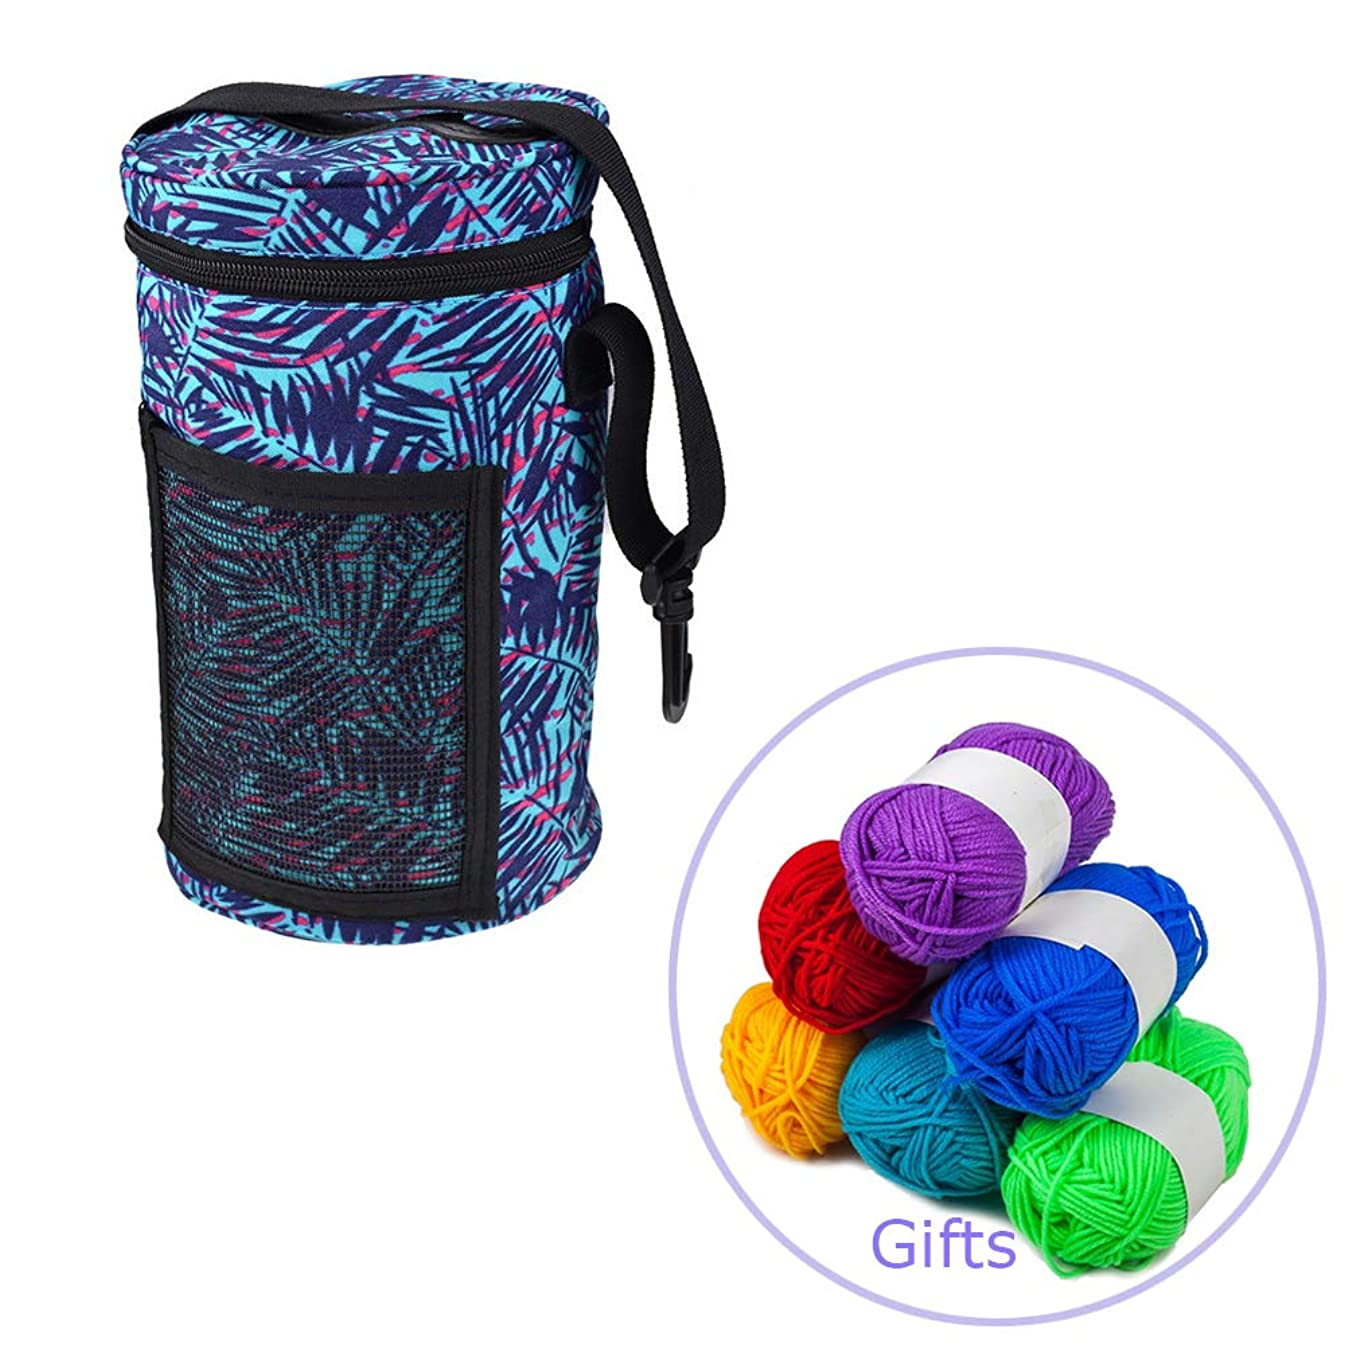 LNKA Knitting Bag for Yarn Storage,Crochet Hooks, Needles and Woolfor Accessories and Slits on Top to Protect Yarn and Prevent Tangling (Free 6 Pack Cotton Mini Yarn) (Medium Size+6 Pack Yarn)